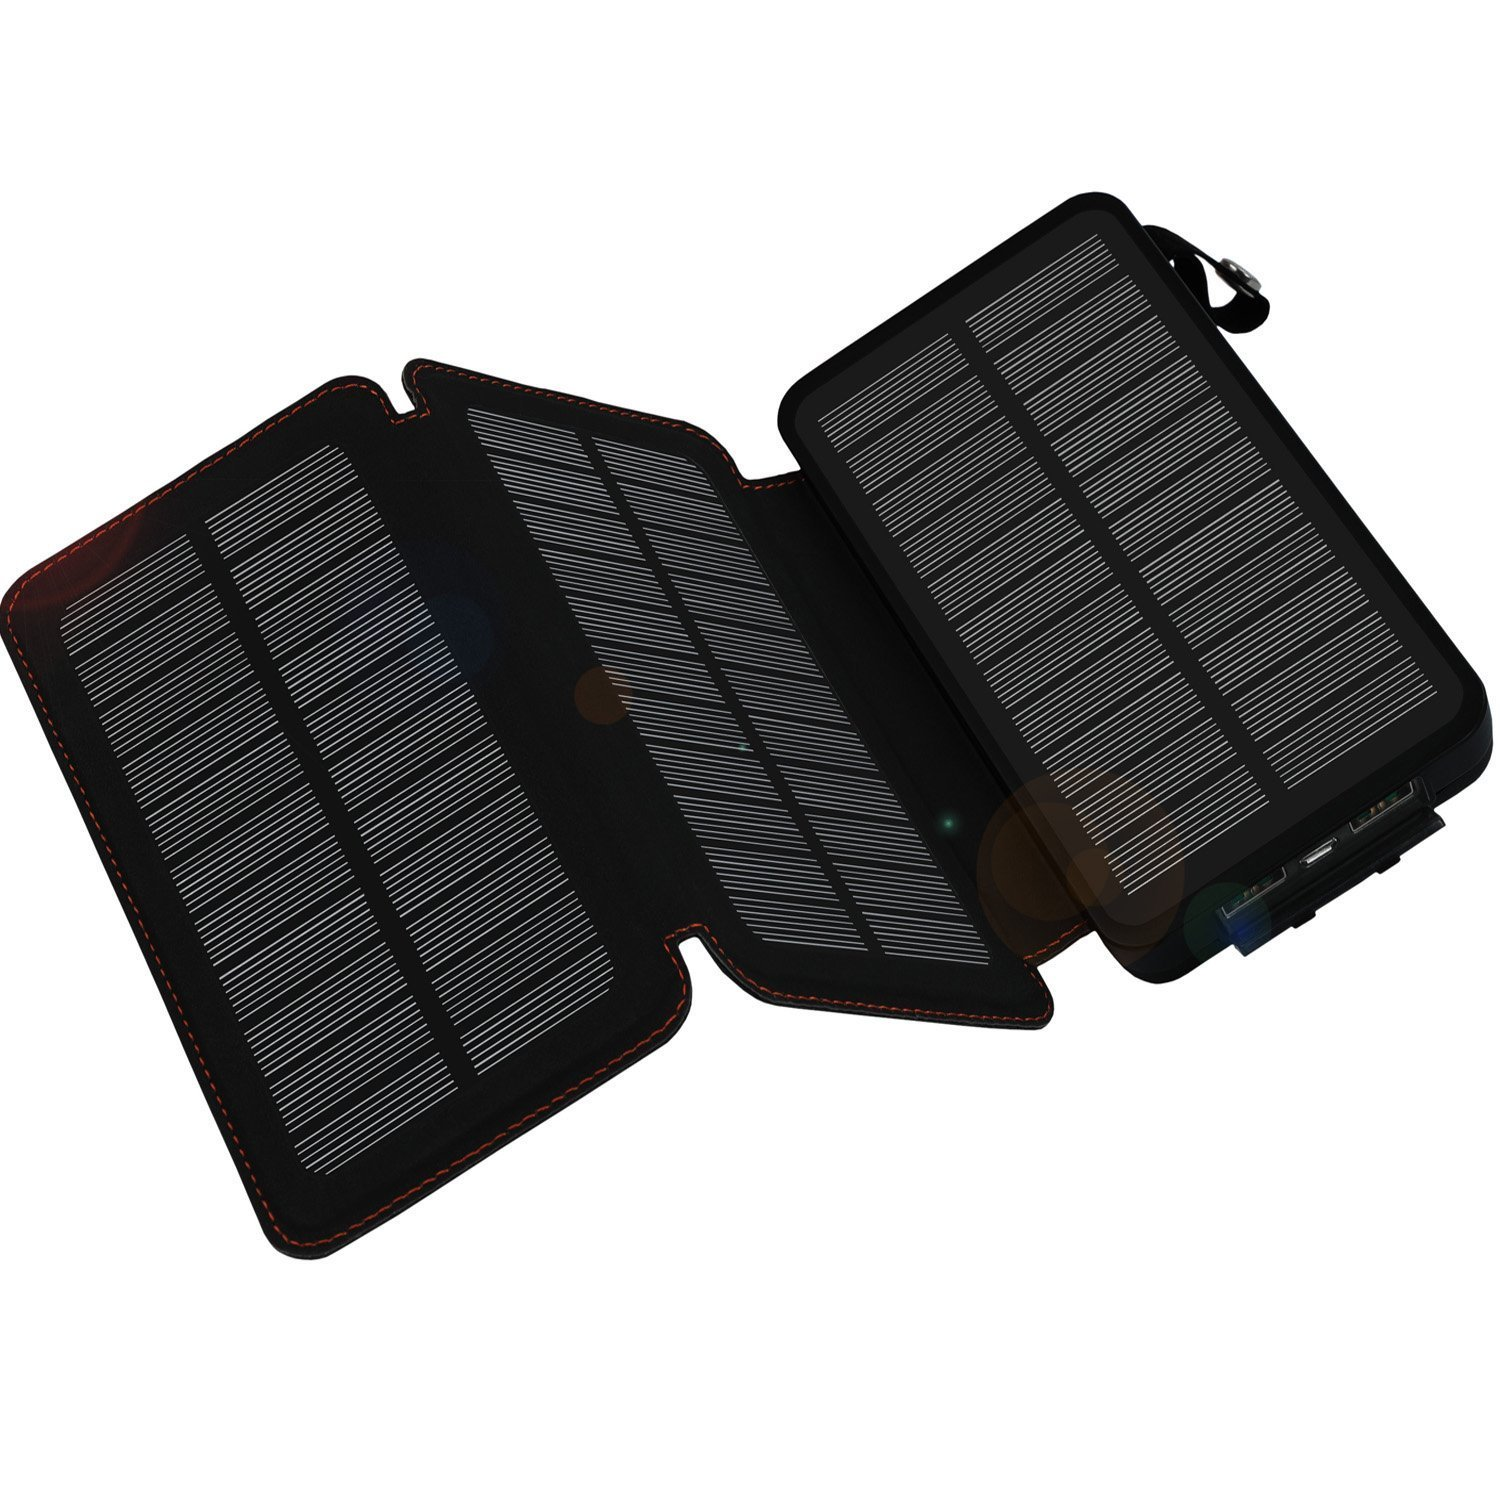 Solar Charger 24000mAh,WBPINE Solar Power Bank Waterproof Dual USB Output with 3 Solar Panels External Battery Bank Flashlights for iPhone,Samsung,Smartphones,Tablets and More (Black)